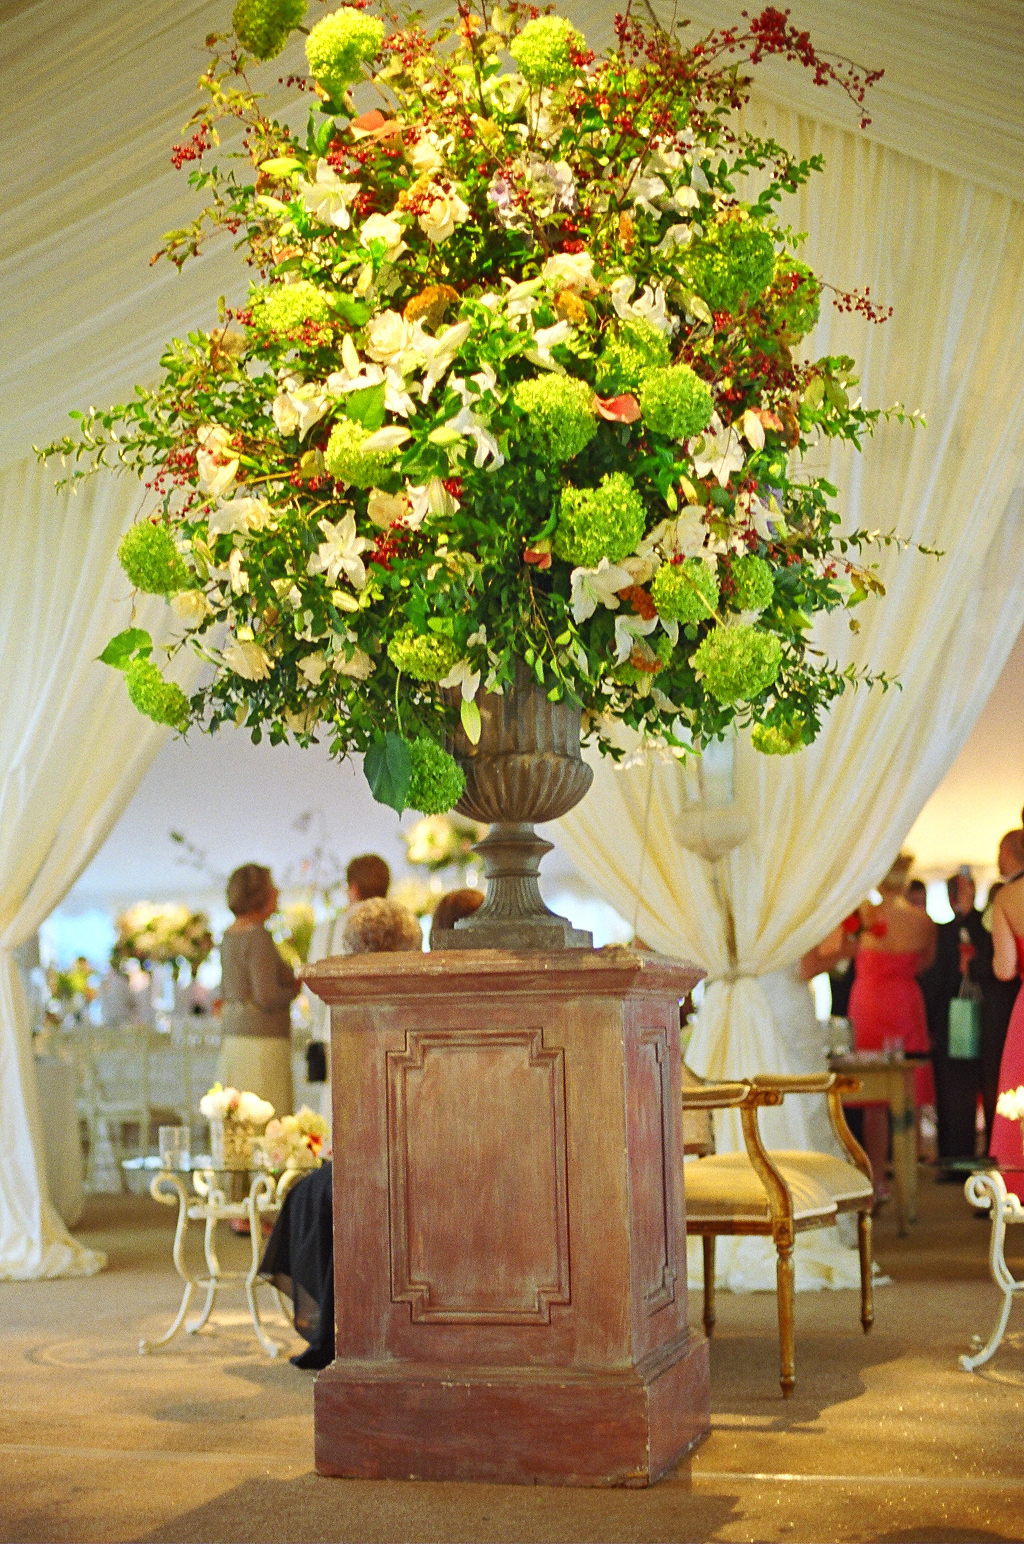 Hotel Foyer Flower Arrangements : Church foyer colors joy studio design gallery best of